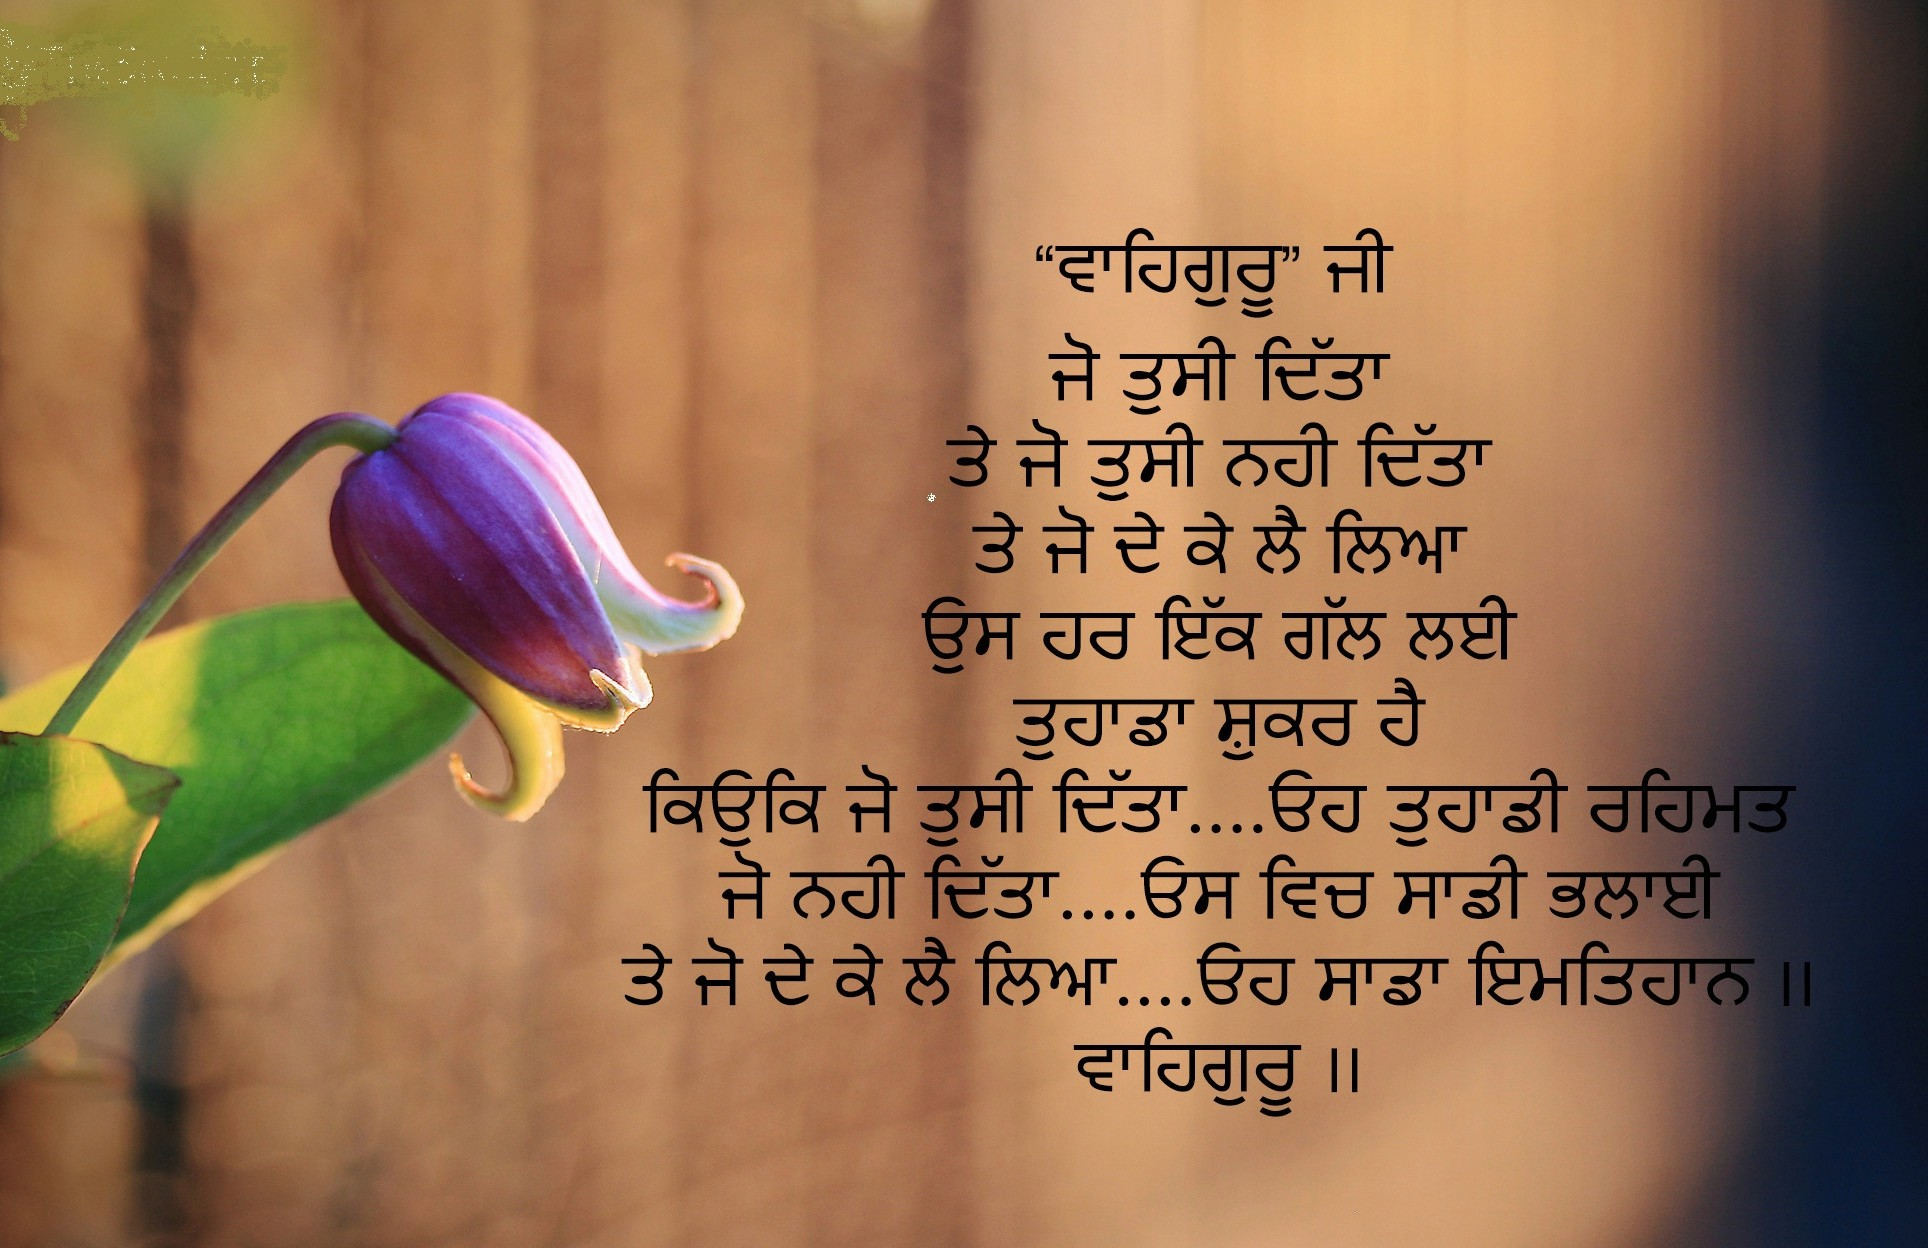 Punjabi Whatsapp Dp Images Source Whatsapp Attitude Status